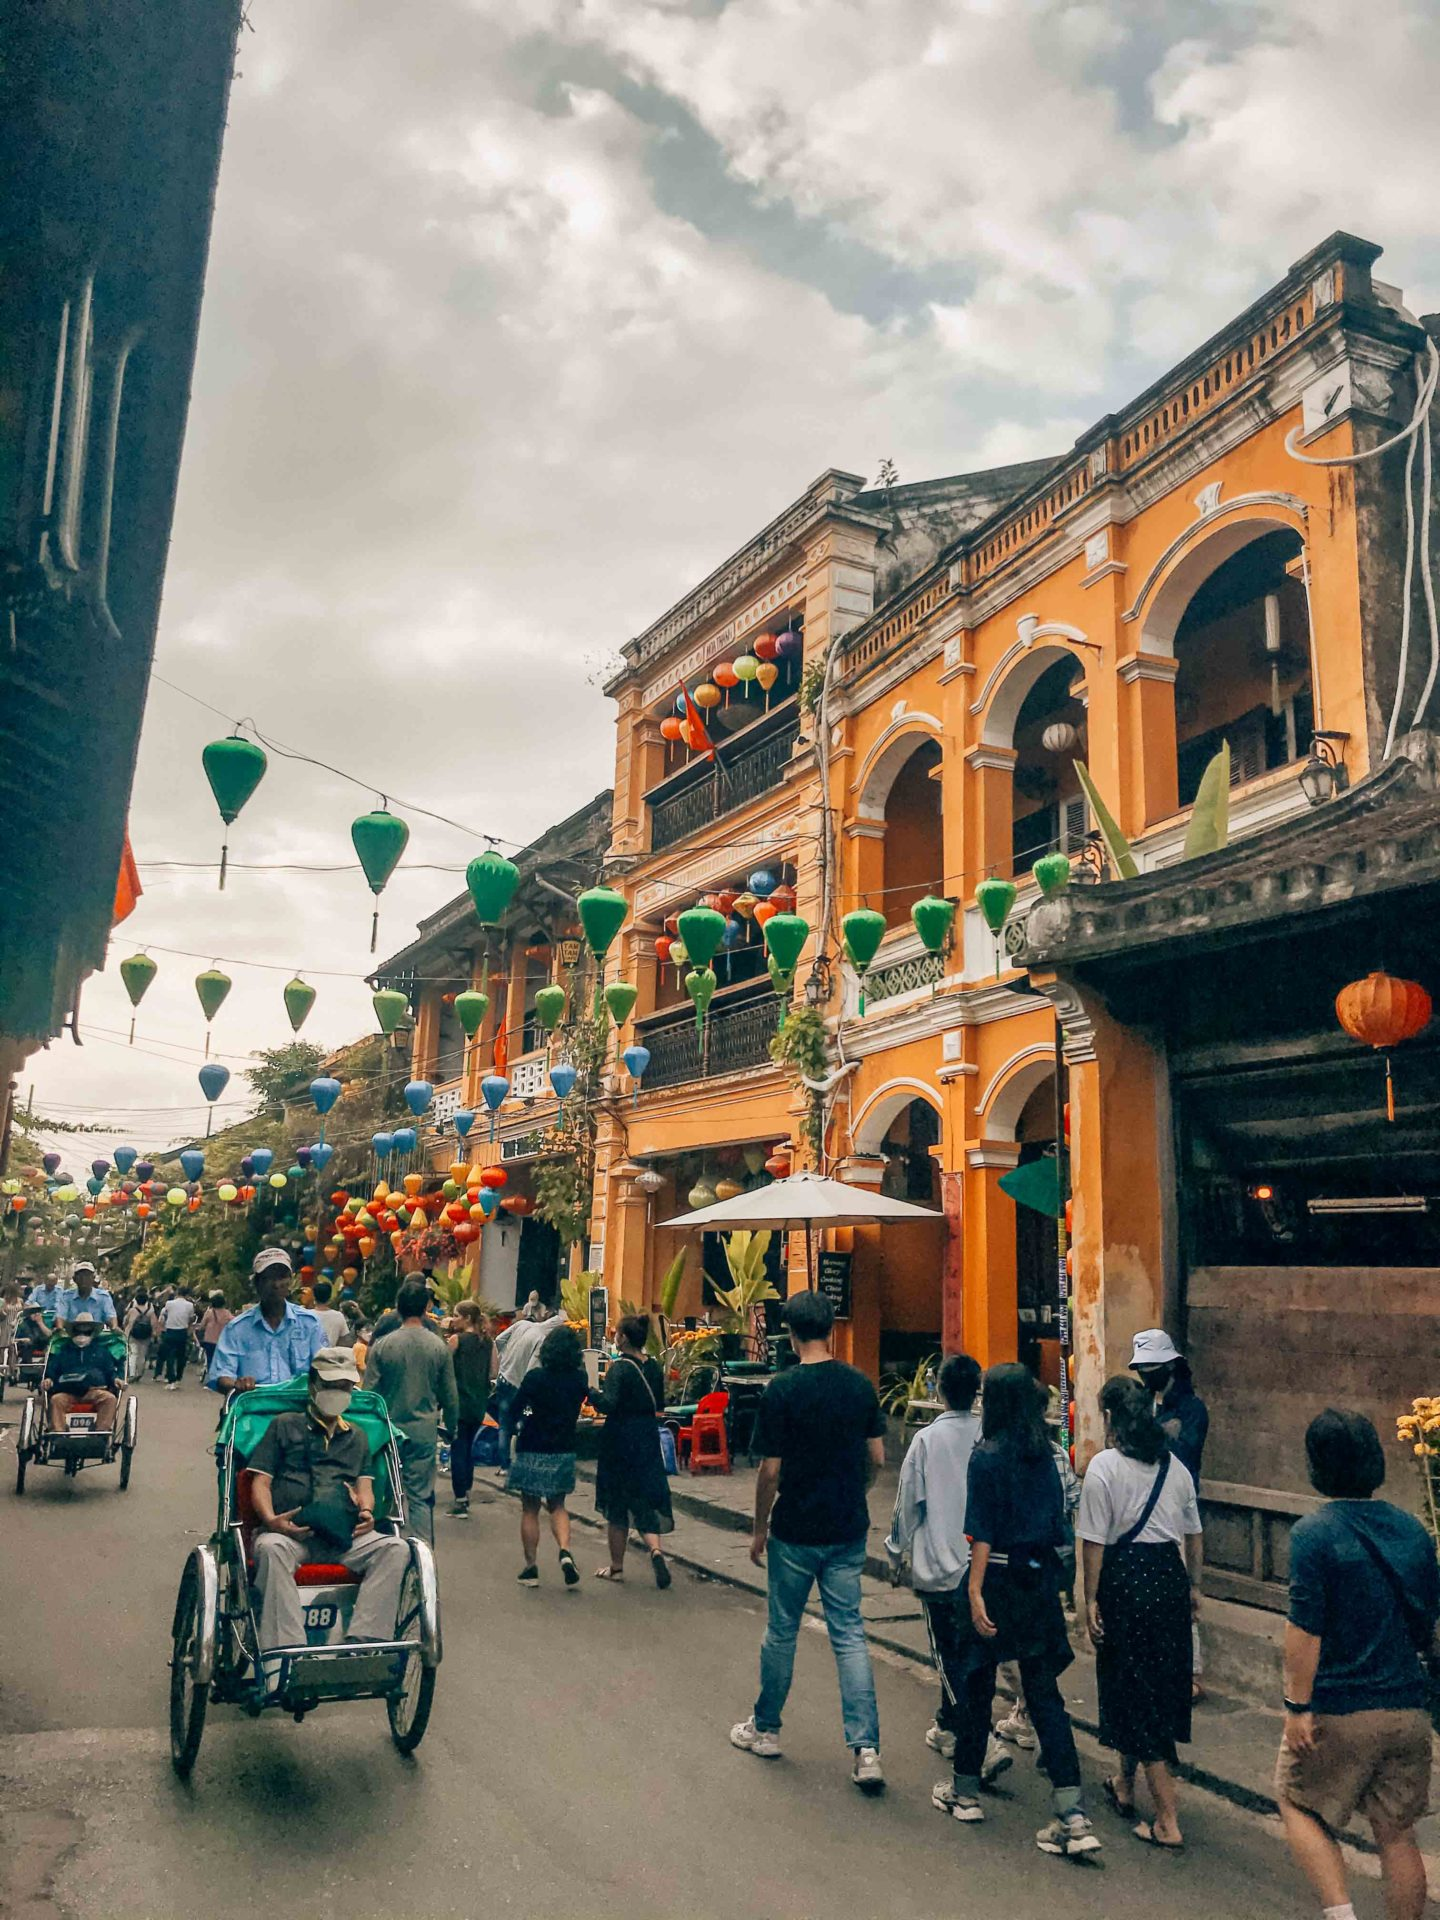 Decorated streets and Tam Tam Cafe with lanterns, Hoi An, Vietnam